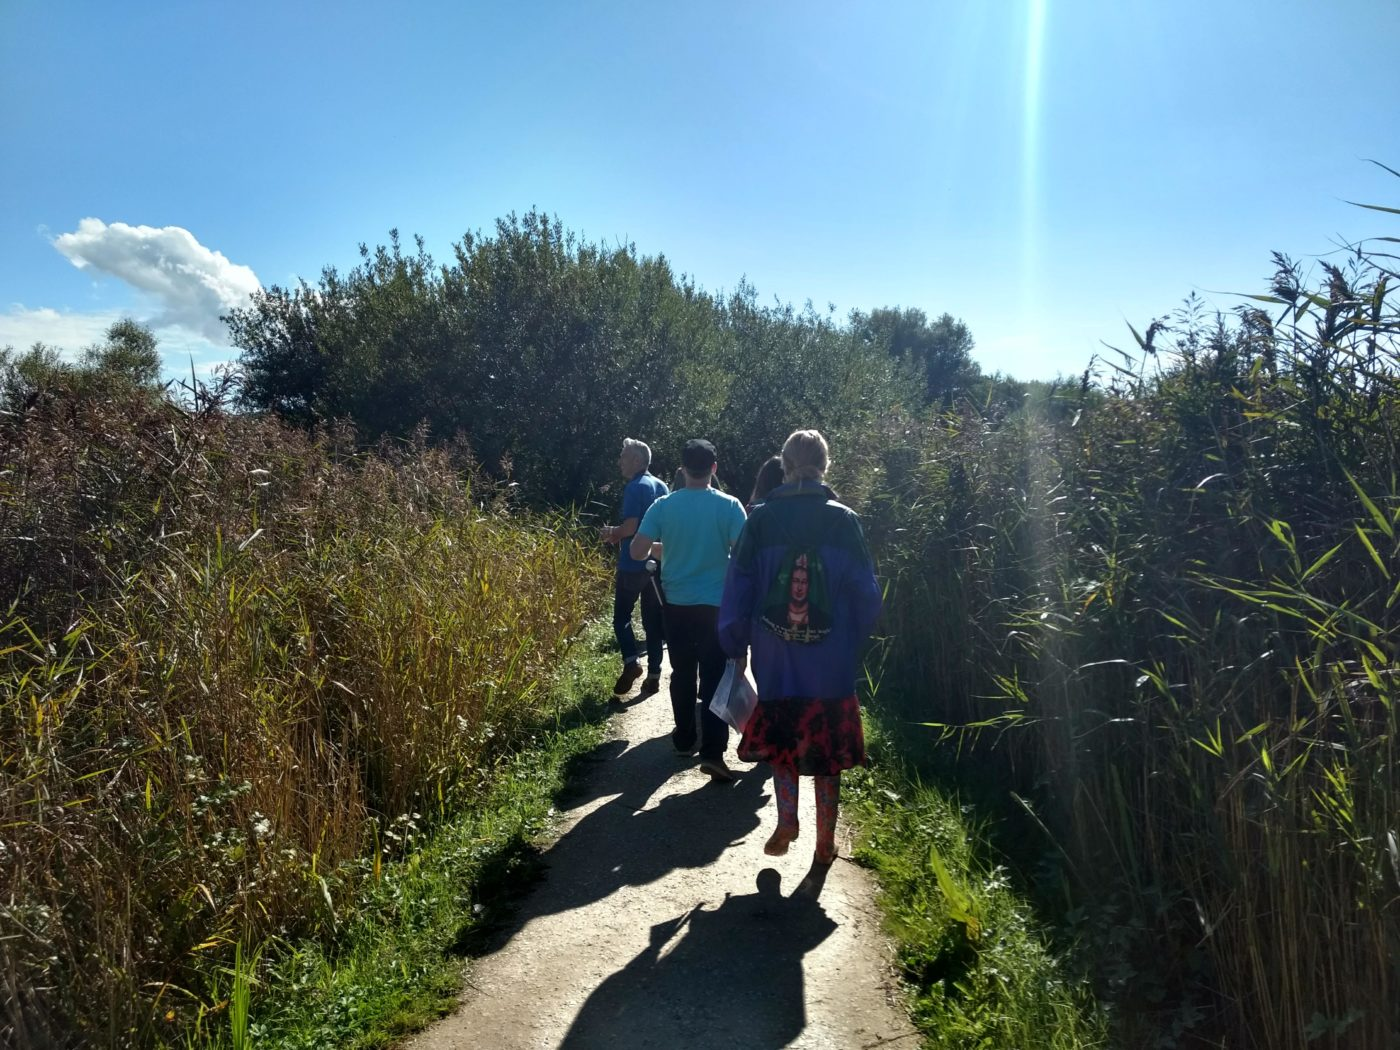 view of group walking along path